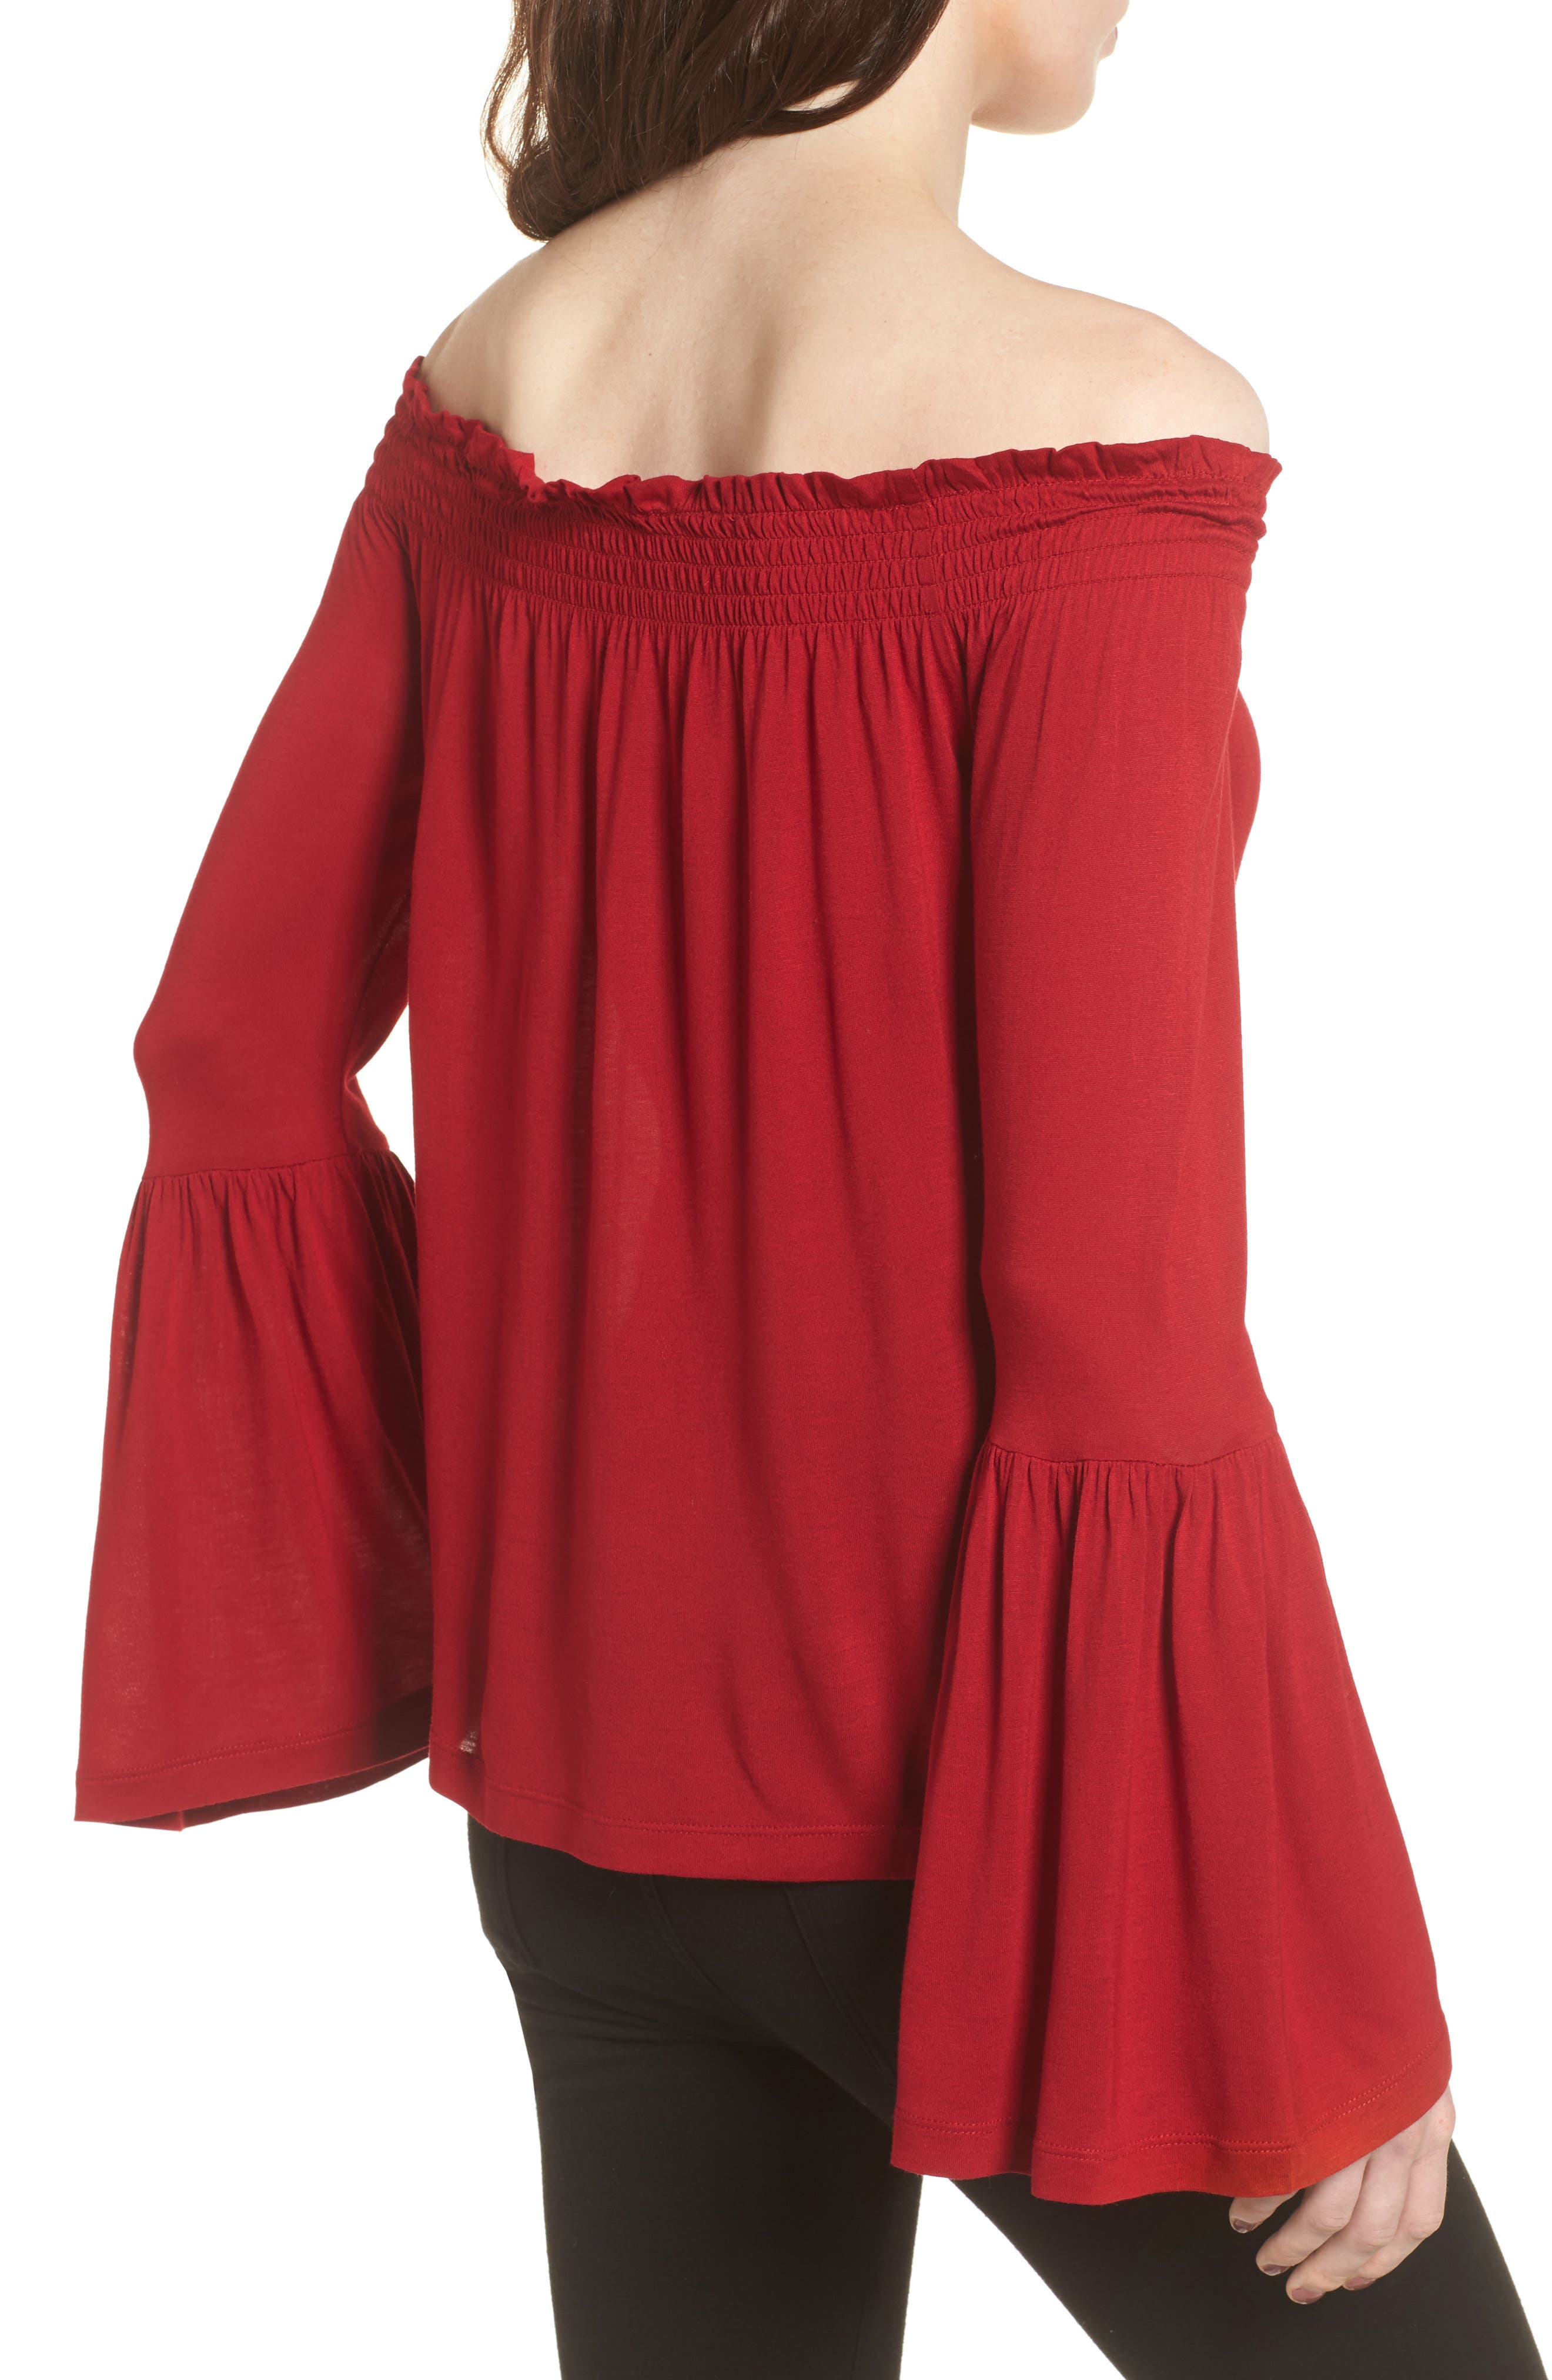 Luck Off the Shoulder Top,                             Alternate thumbnail 2, color,                             643